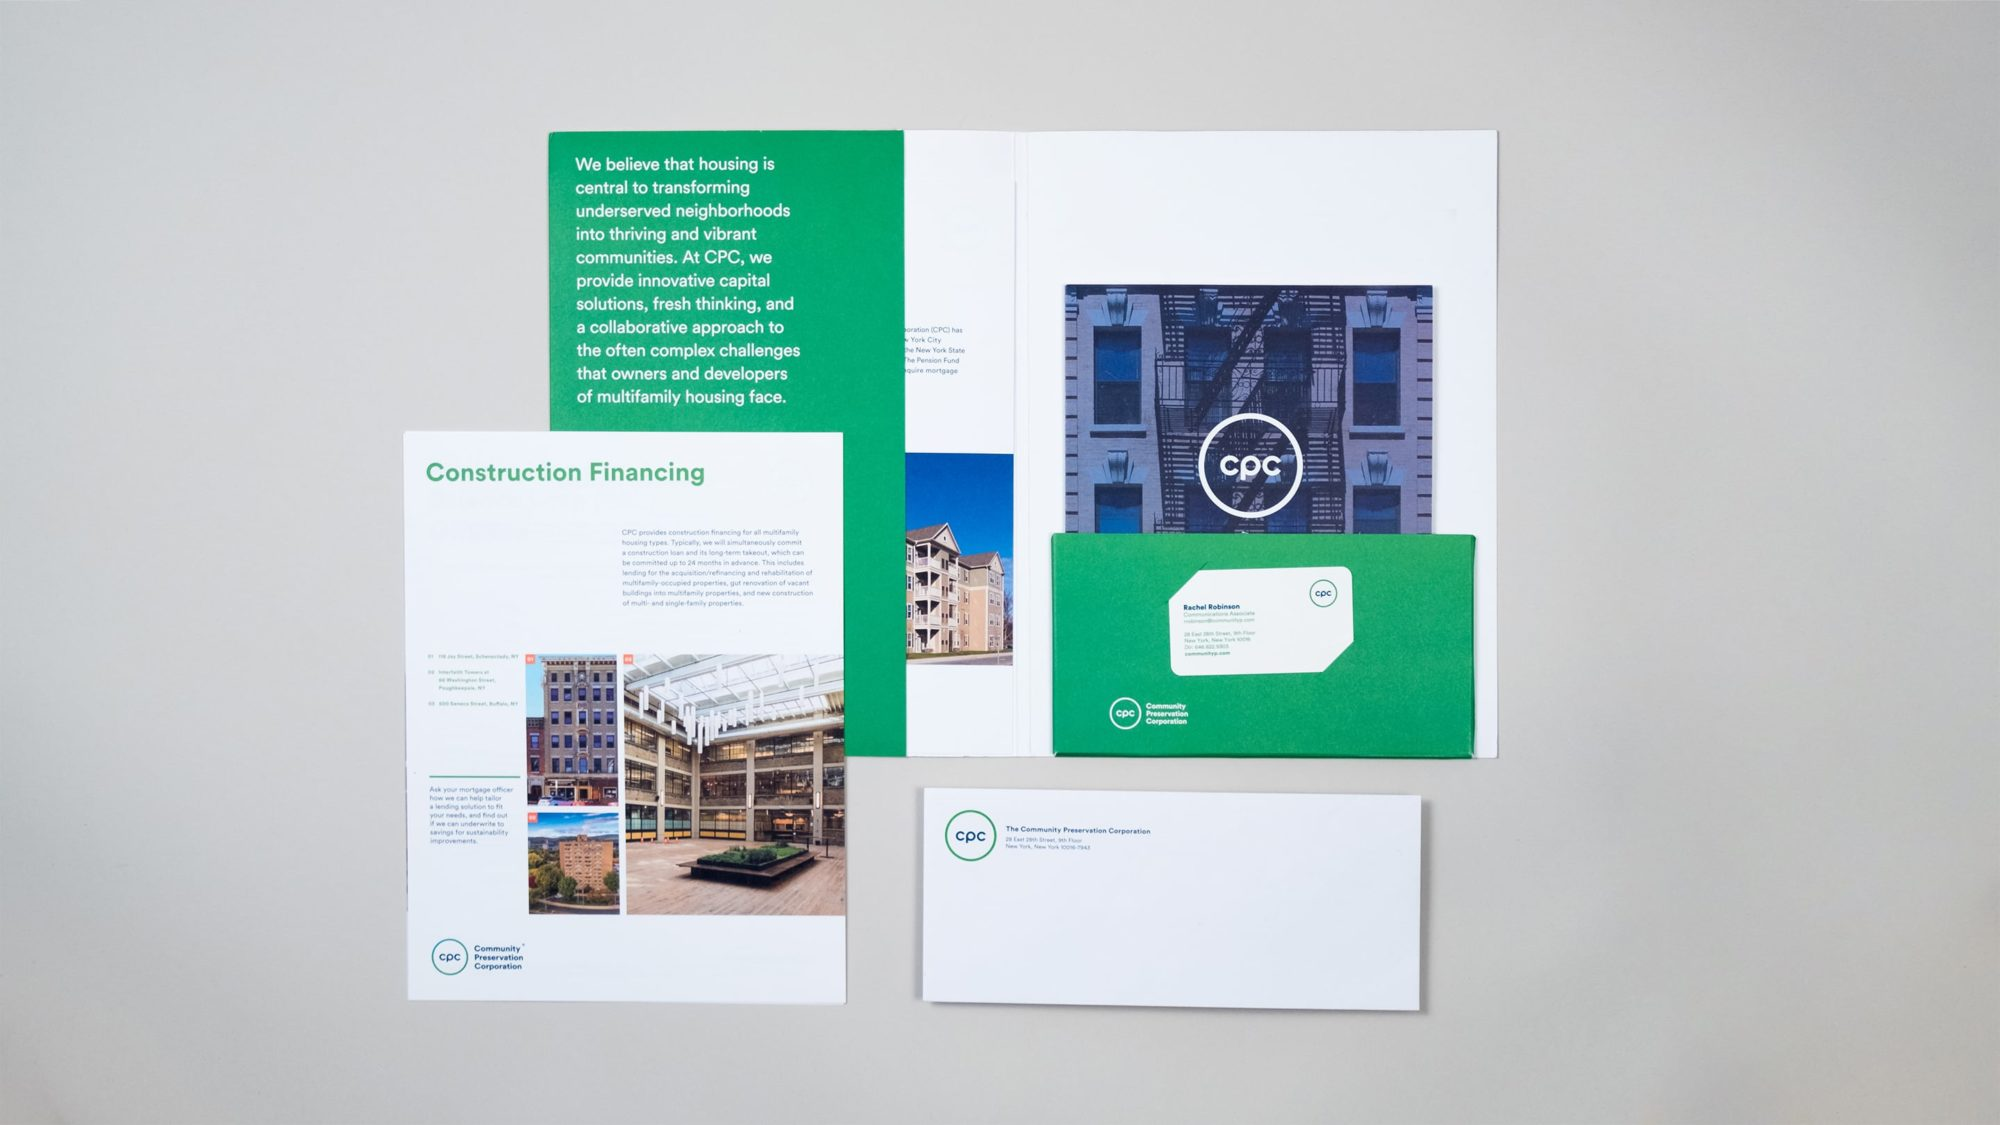 Full suite of brand materials laid out including a custom folder, capabilities brochure, one sheet, business envelope, and business card